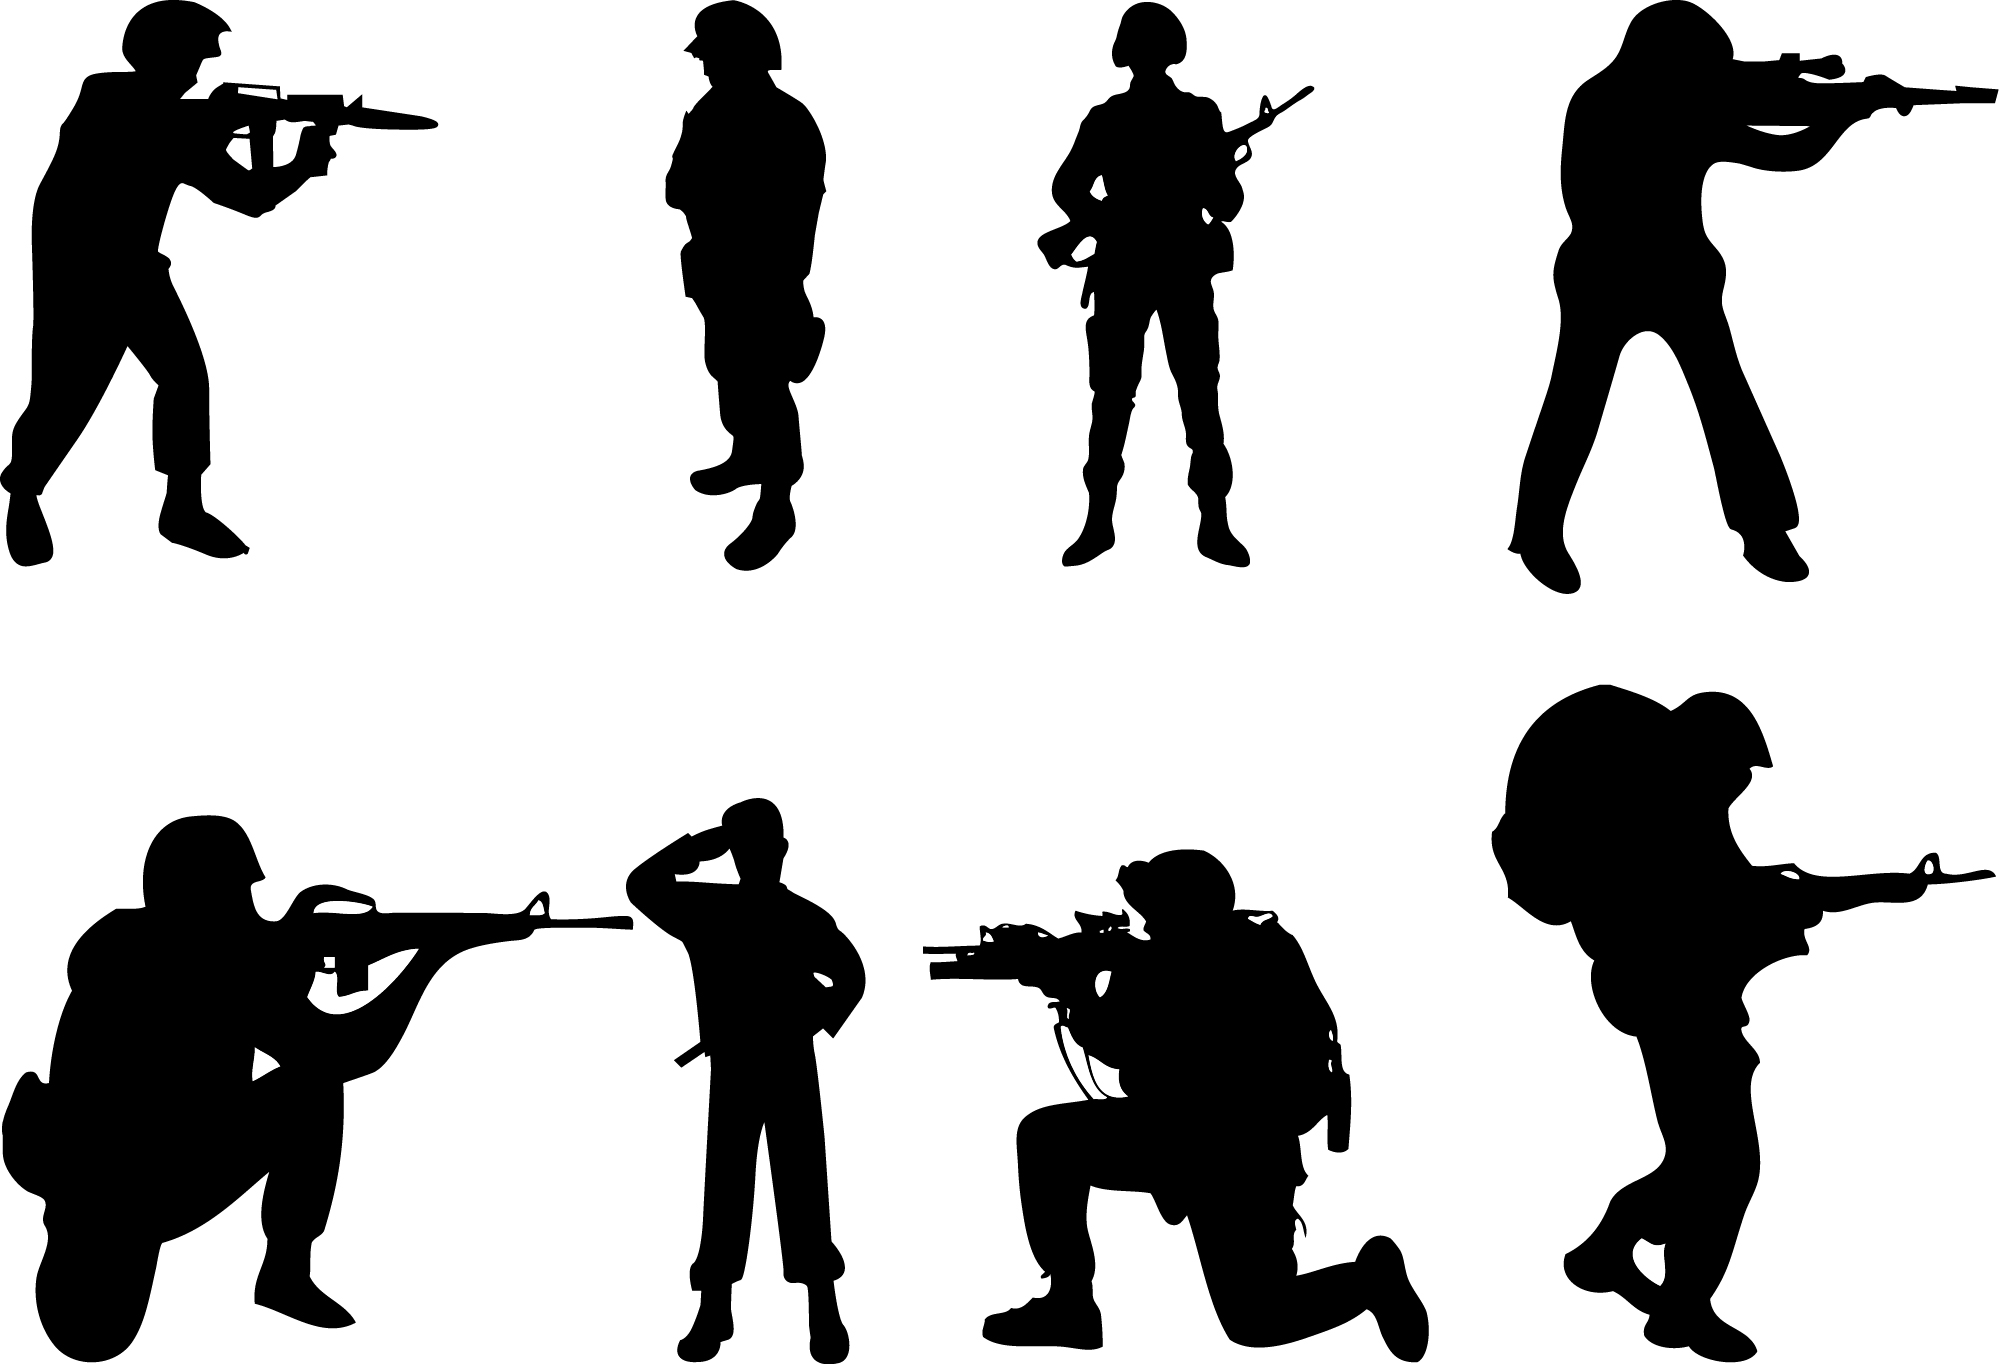 clip art library Military clip art image. Clipart army.